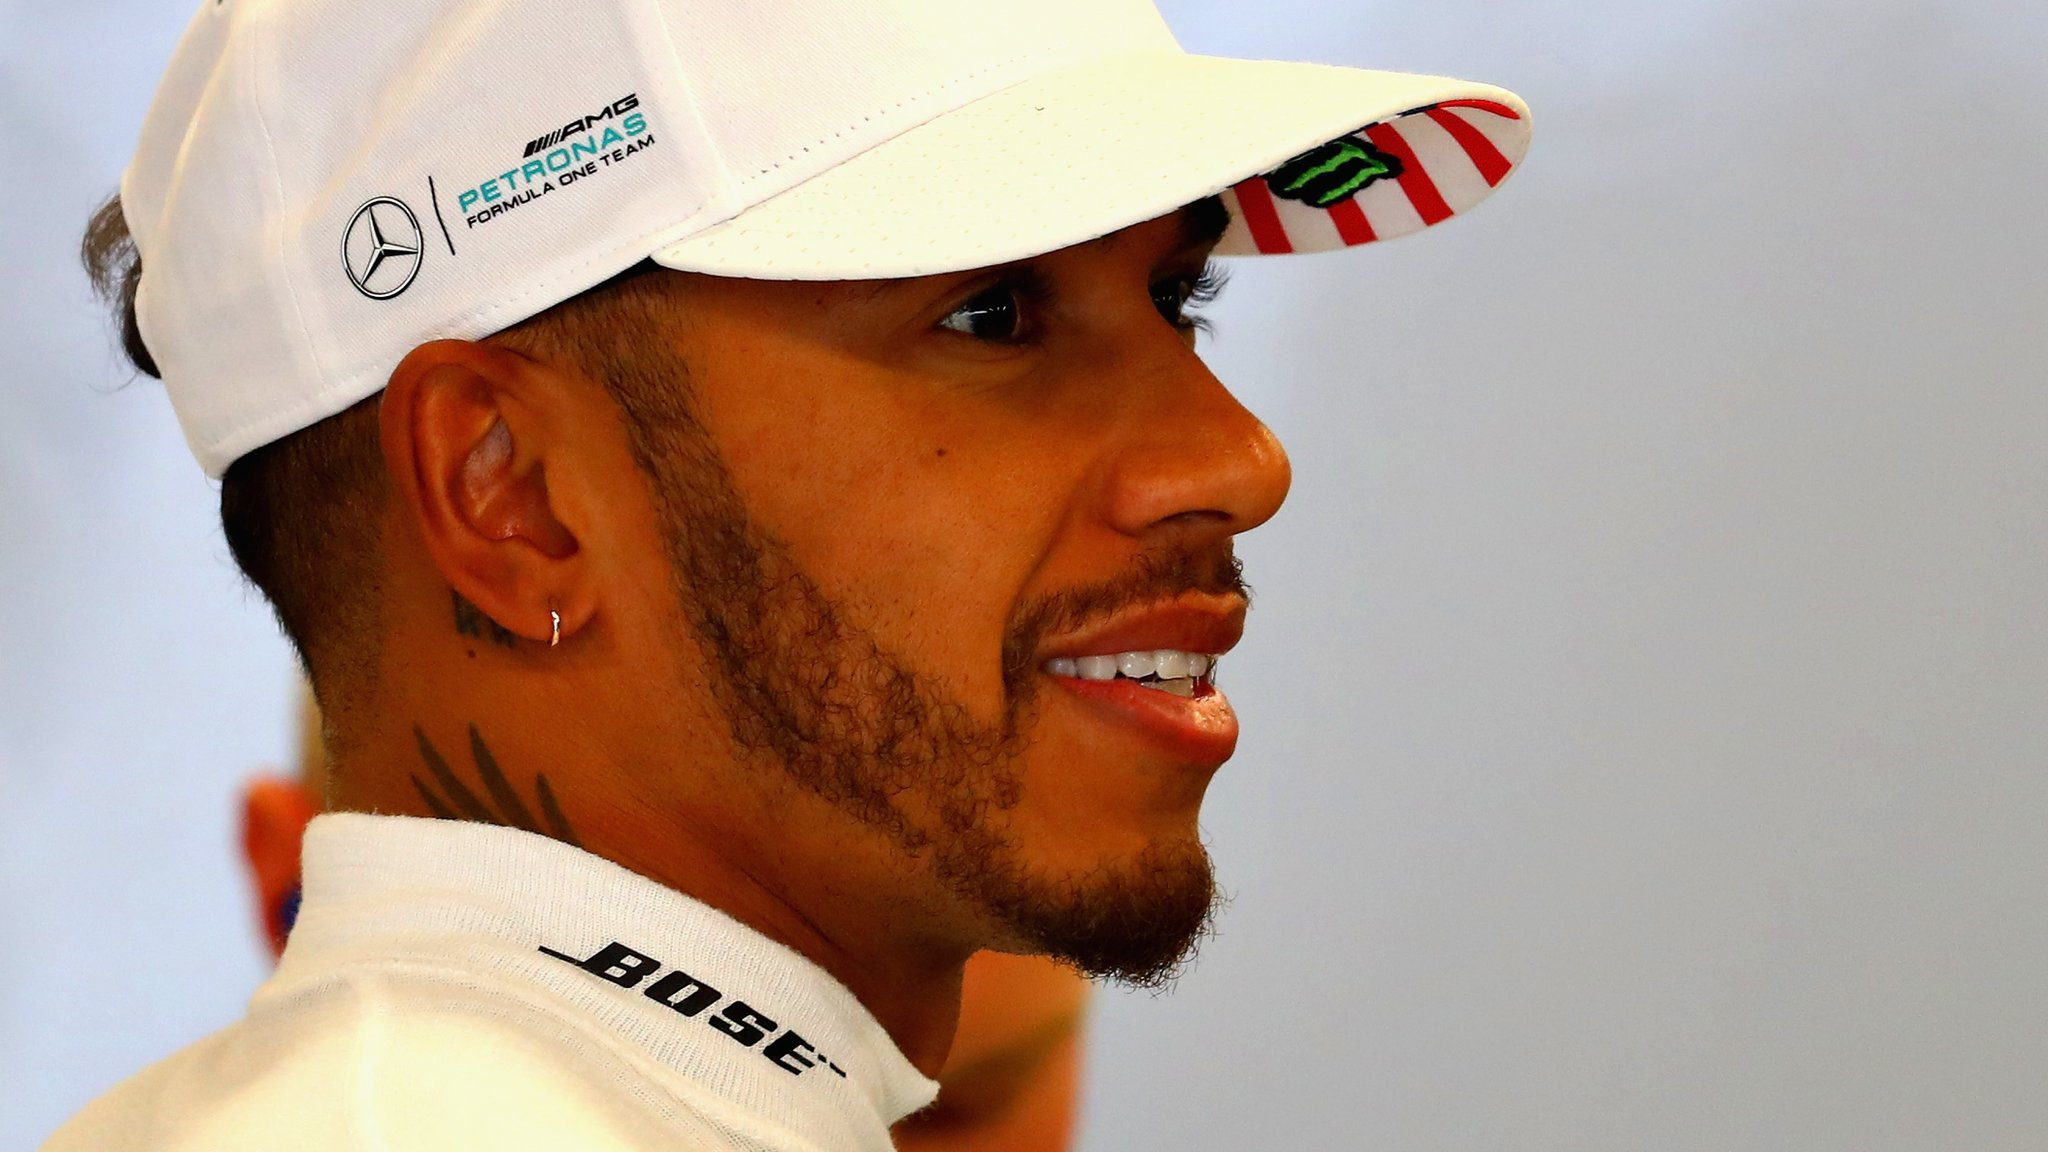 Lewis Hamilton top in US GP practice as Vettel struggles